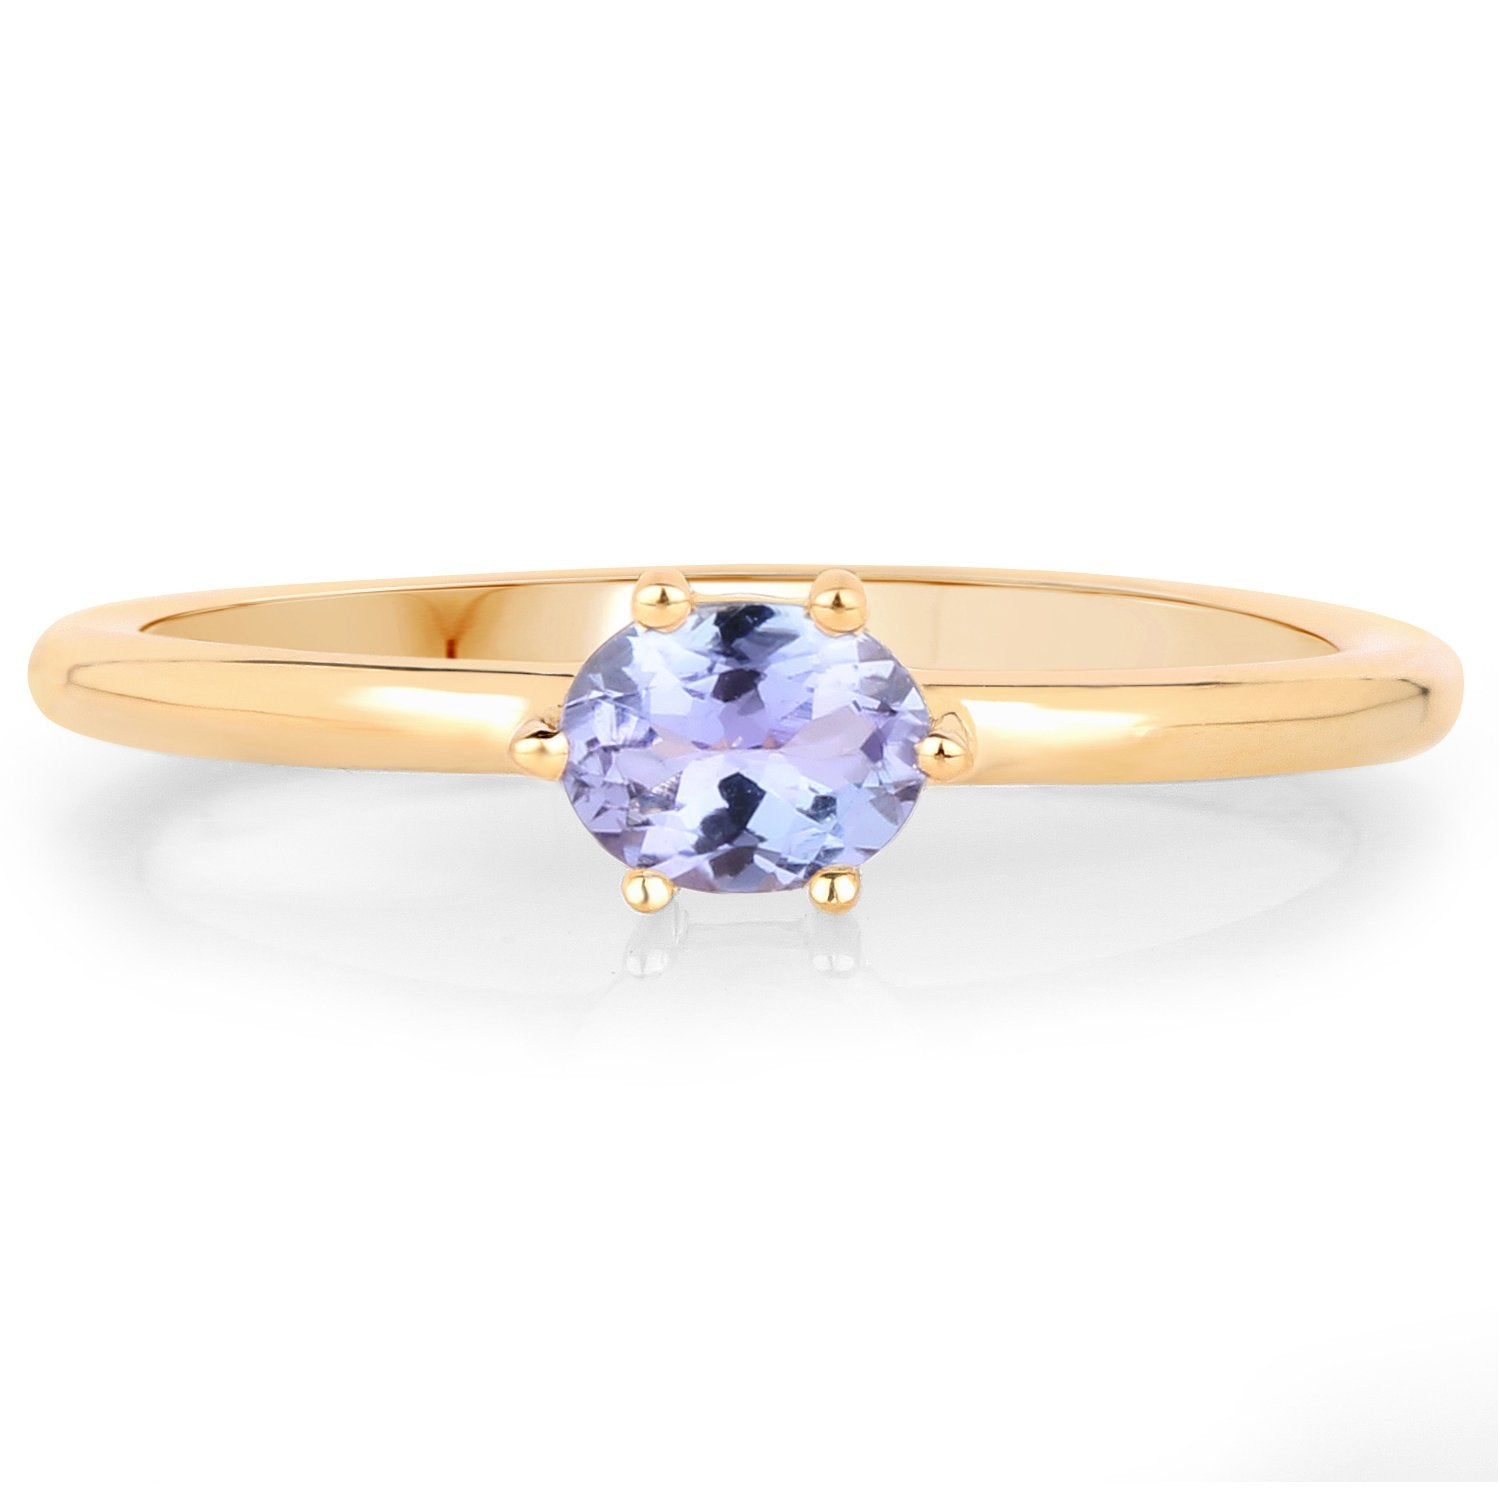 LoveHuang 0.30 Carats Genuine Tanzanite Ring Solid .925 Sterling Silver With 18KT Yellow Gold Plating